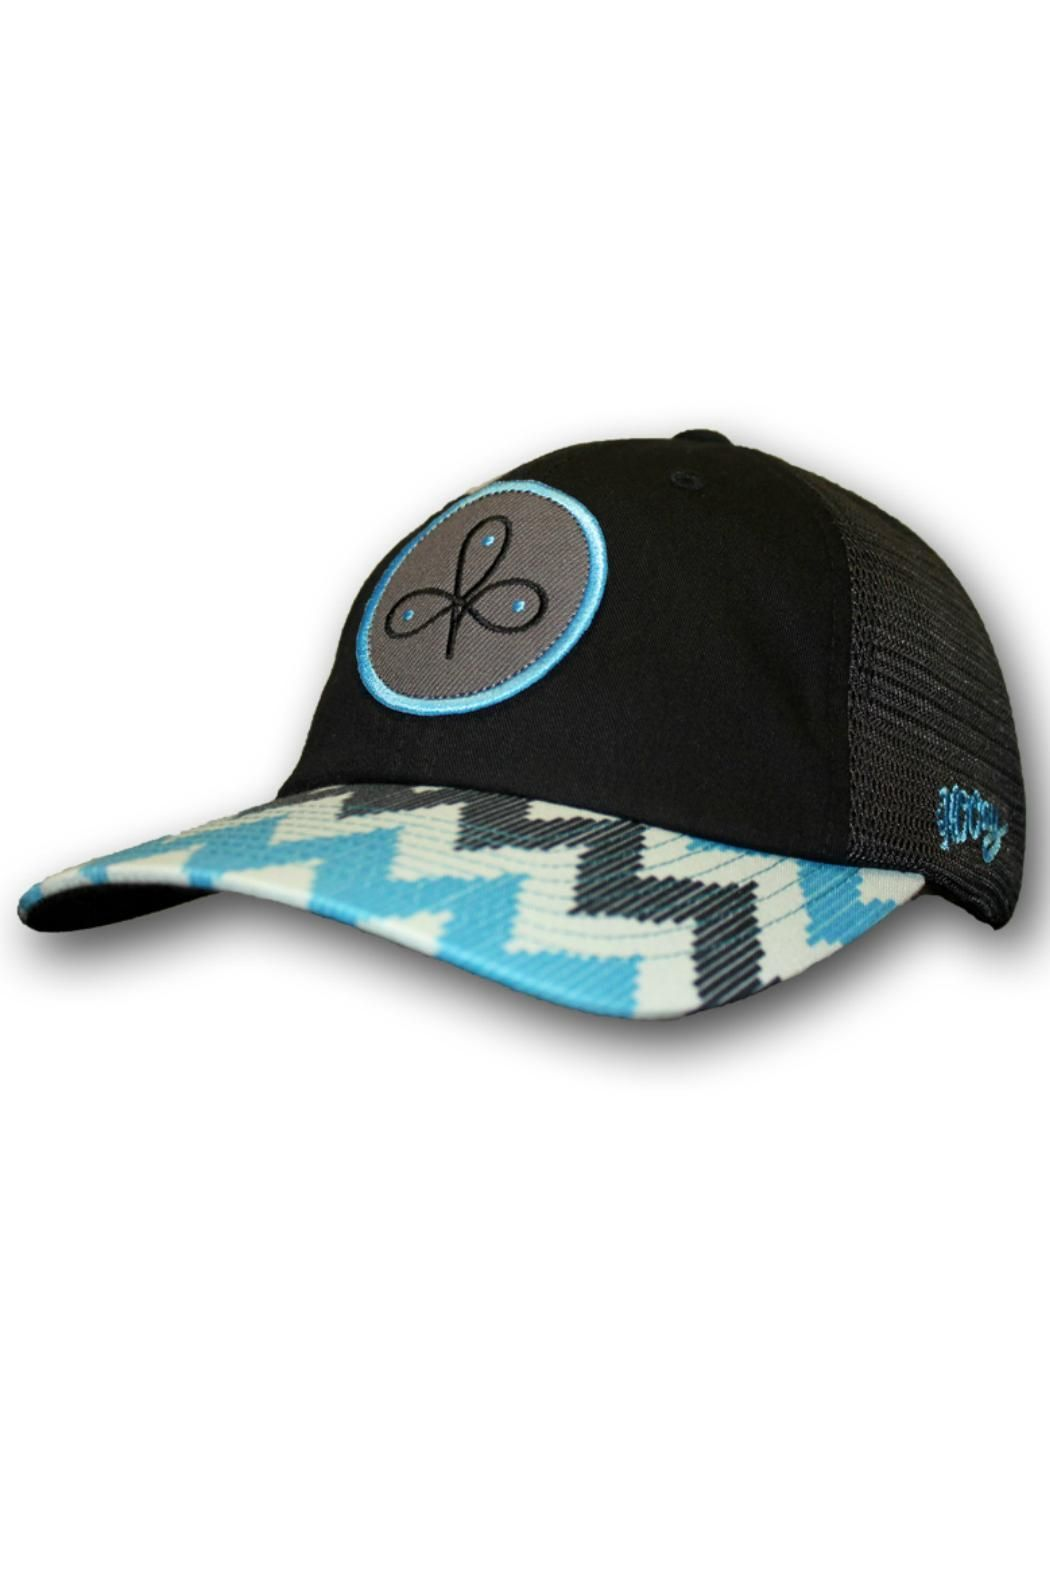 Clover leaf ladies trucker with blue pattern on the bill-OSFA . This cap  has a mesh back with snap closure. Ladies Trucker Hat by Hooey. e8d8f939d57